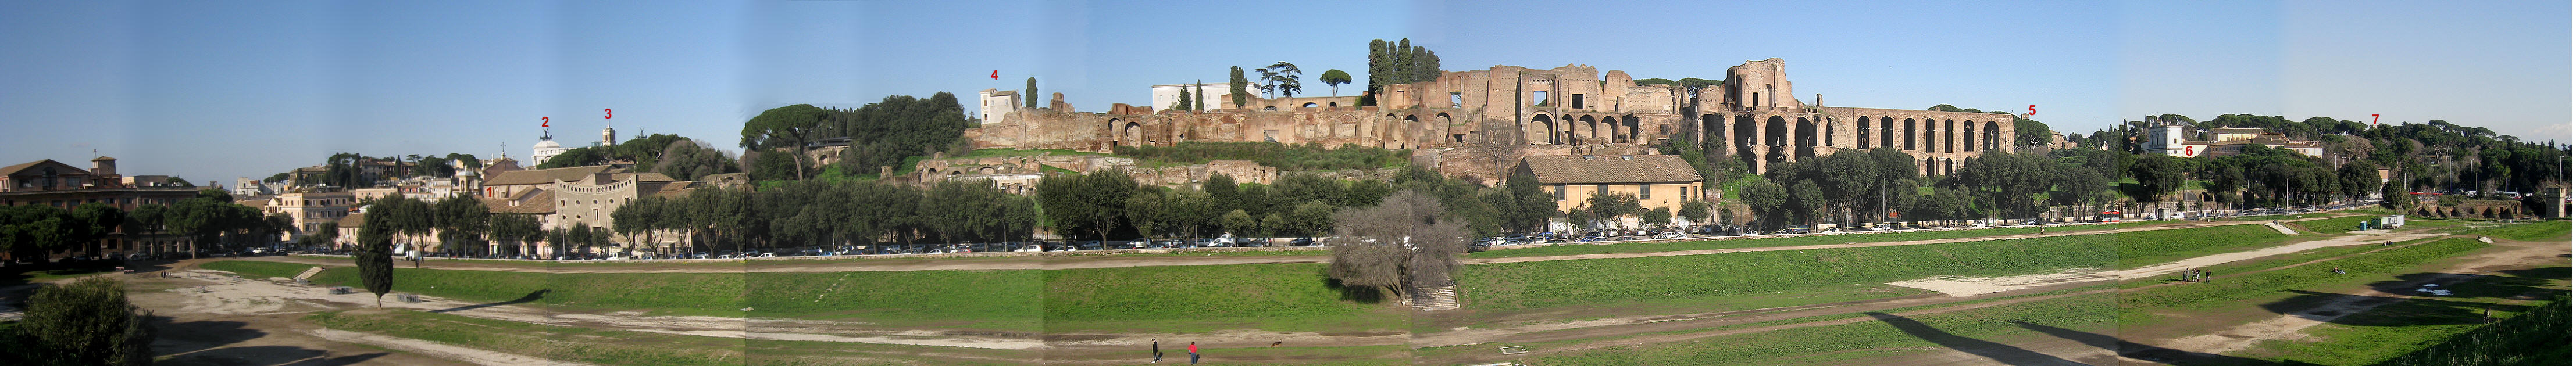 Grand View of the Palatine Hill